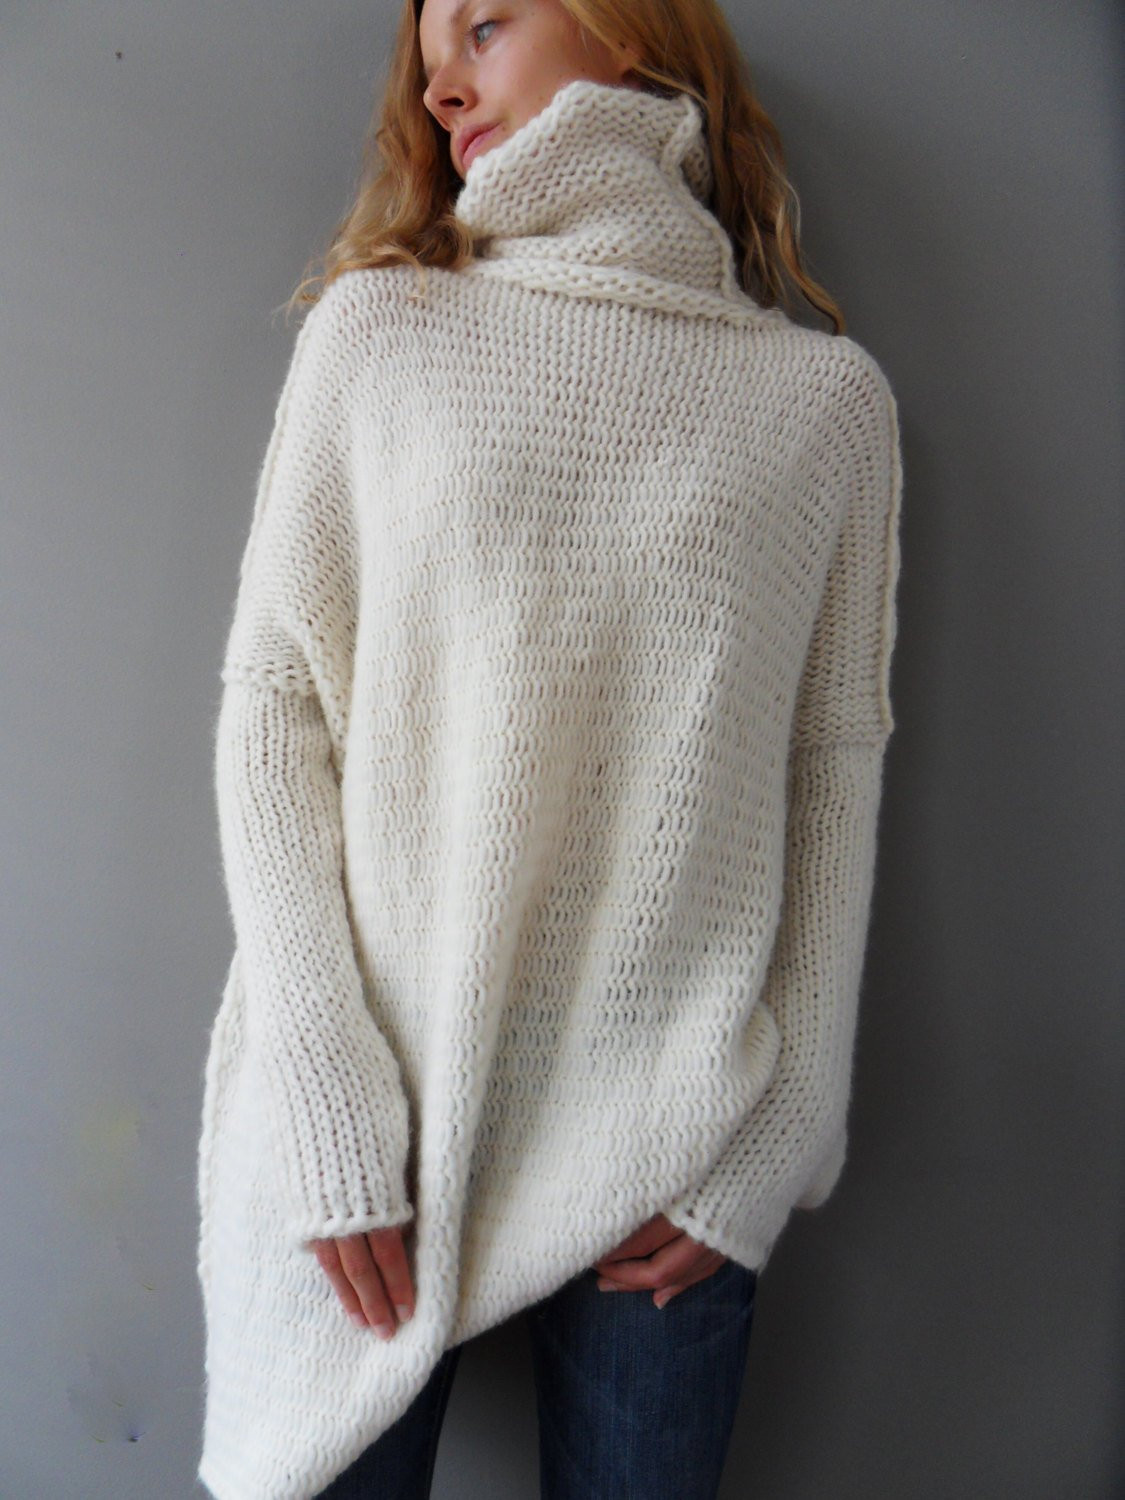 Womens Cable Knit Sweater Elegant Womens Oversized Chunky Cable Knit Sweater Bronze Cardigan Of Innovative 44 Pics Womens Cable Knit Sweater